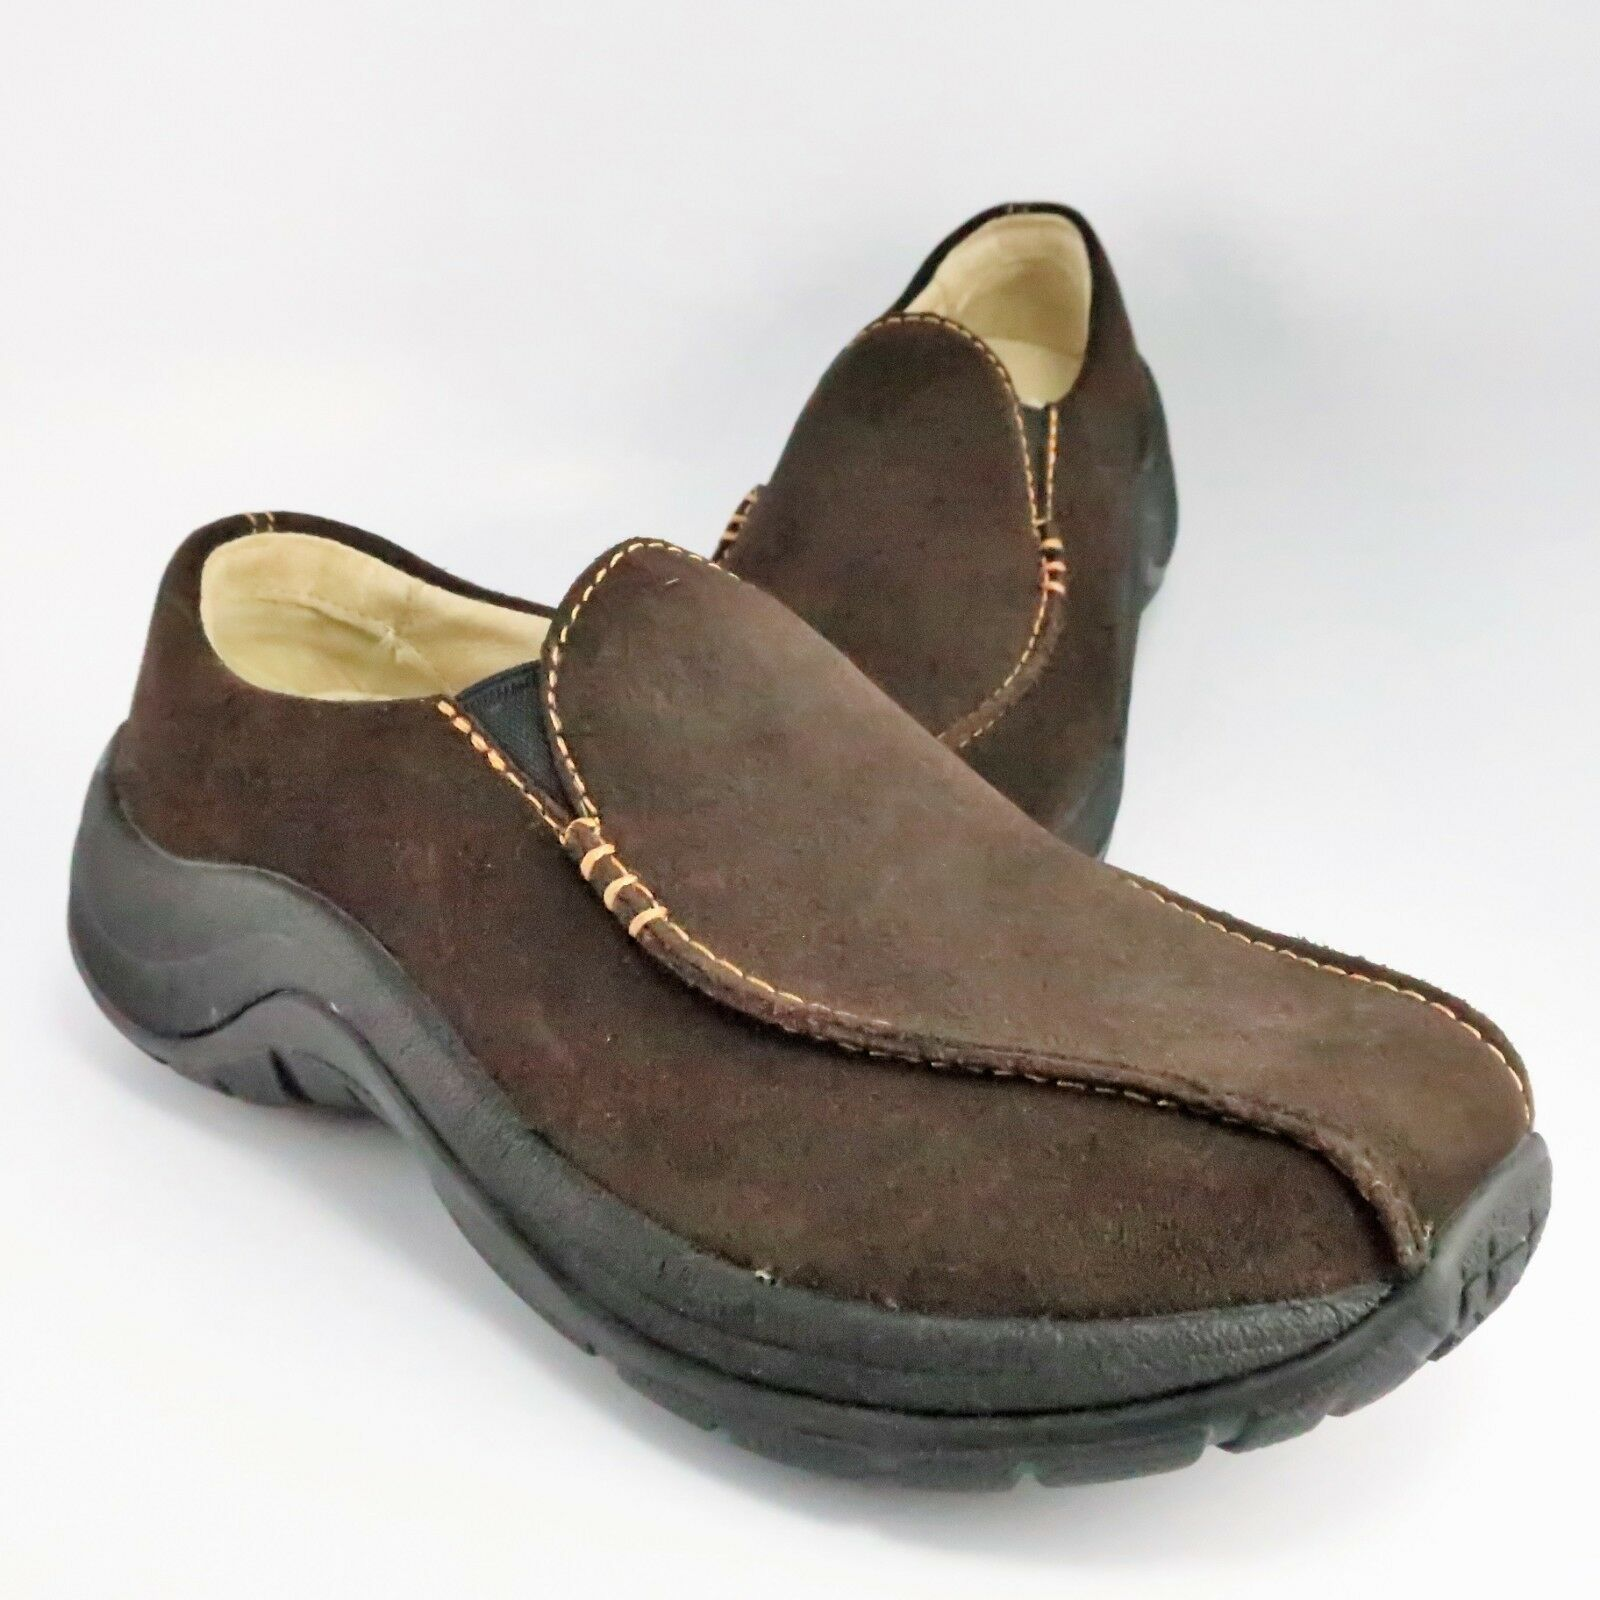 NEW - LL Bean Moccasin Clogs Womens Size 6.5M Brown Suede Leather Slip-On Hiking